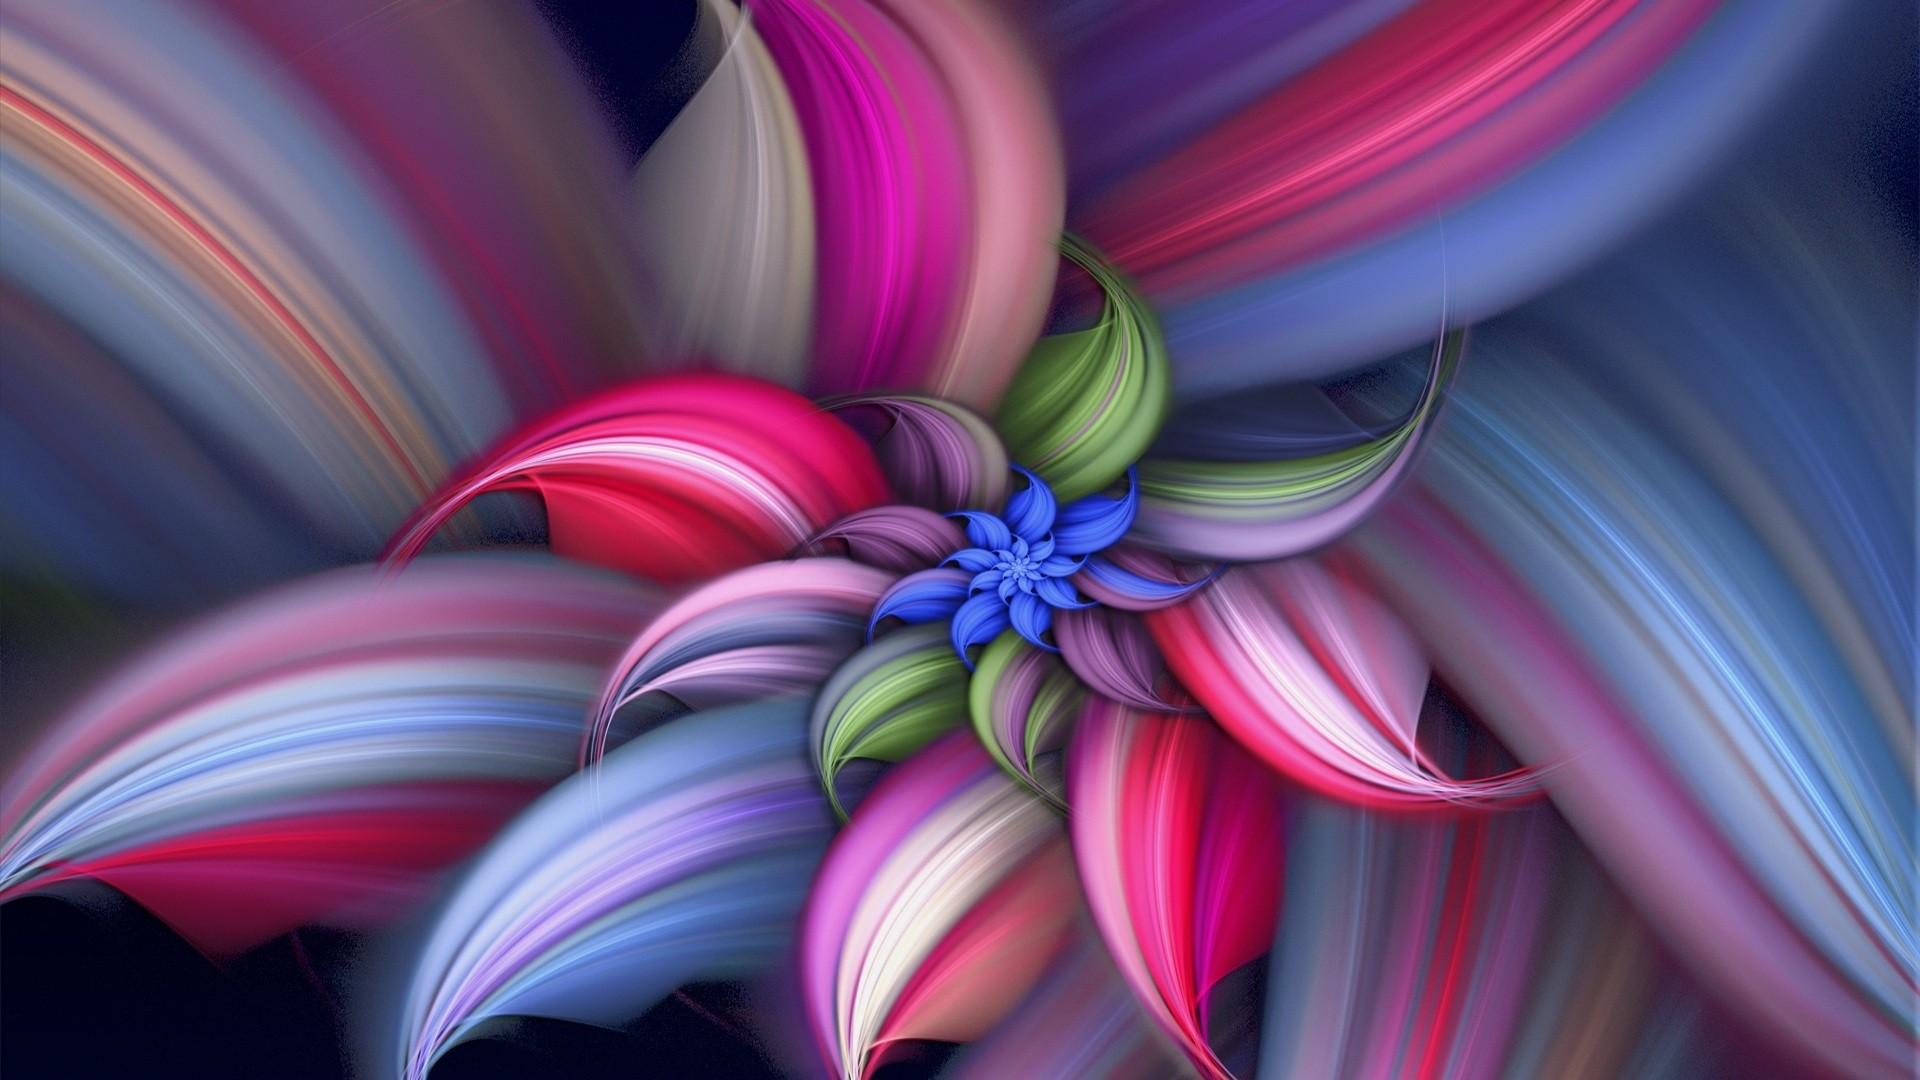 19 Abstract Flower Designs Images